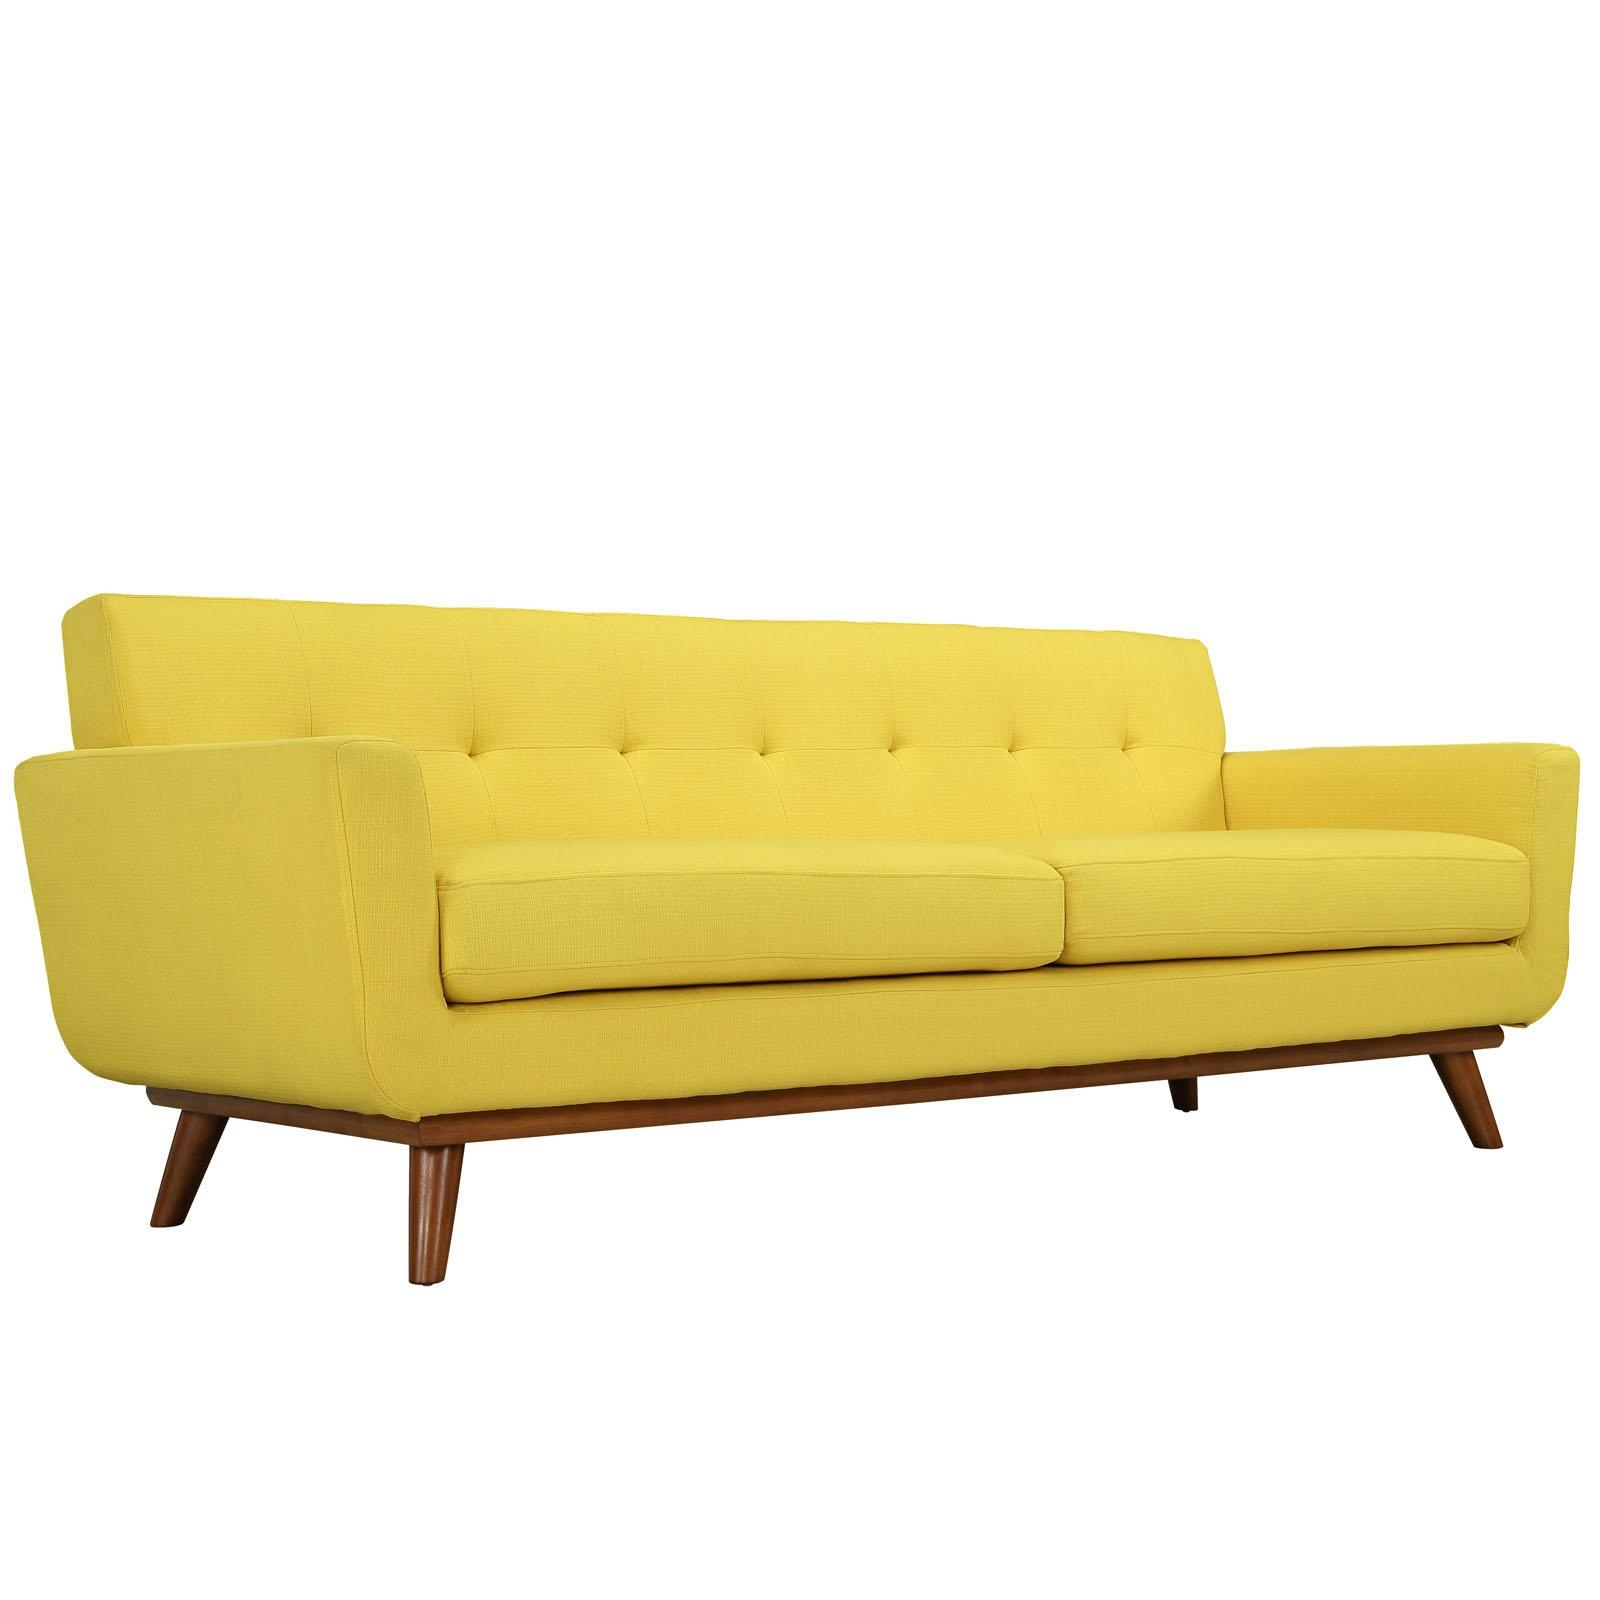 Yellow Chairs 20 Photos Yellow Sofa Chairs Sofa Ideas